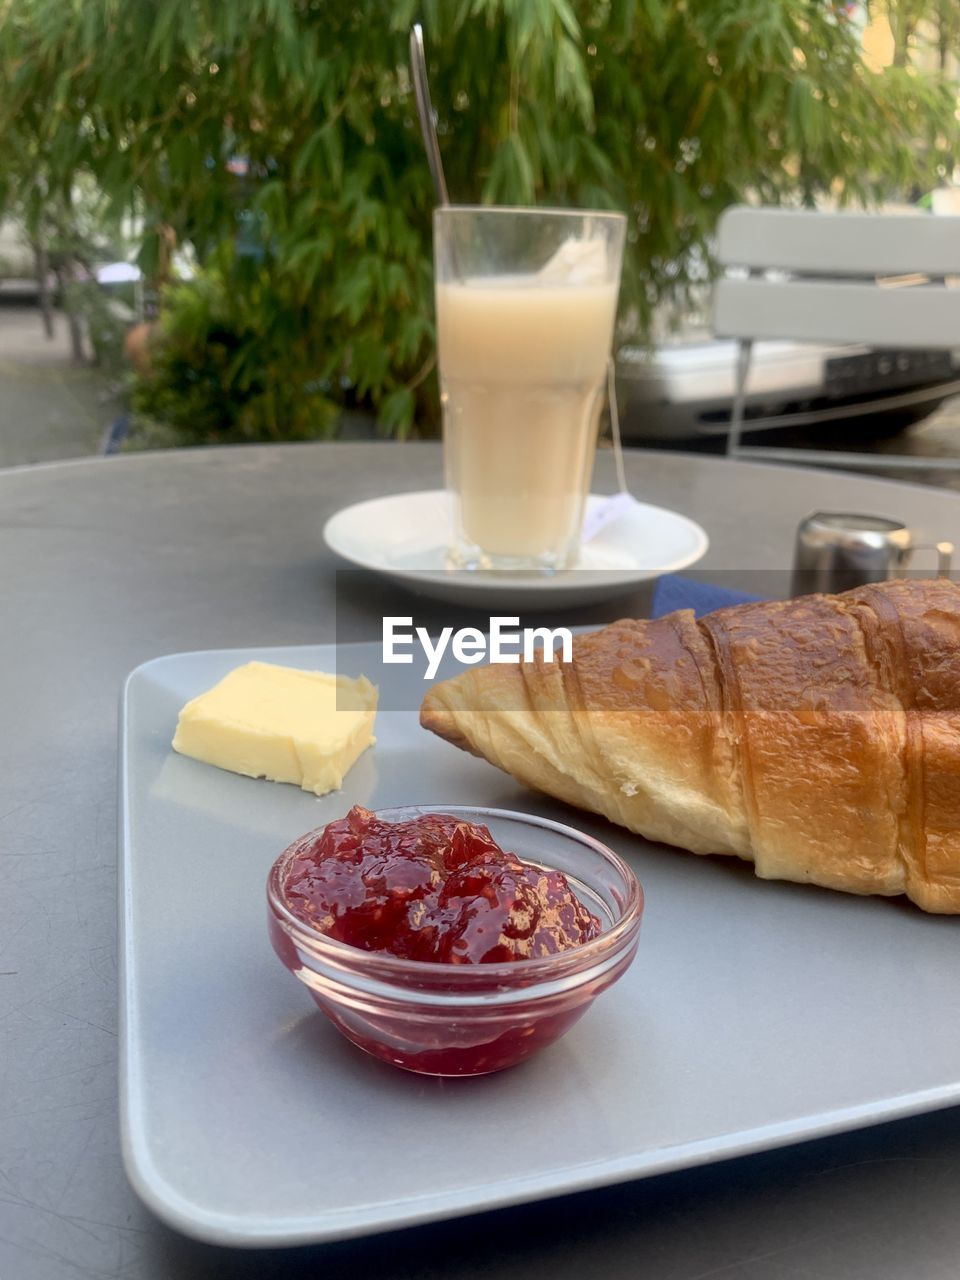 food and drink, food, table, freshness, plate, drink, ready-to-eat, still life, glass, refreshment, drinking glass, close-up, no people, serving size, meal, household equipment, breakfast, healthy eating, dairy product, wellbeing, french food, temptation, tray